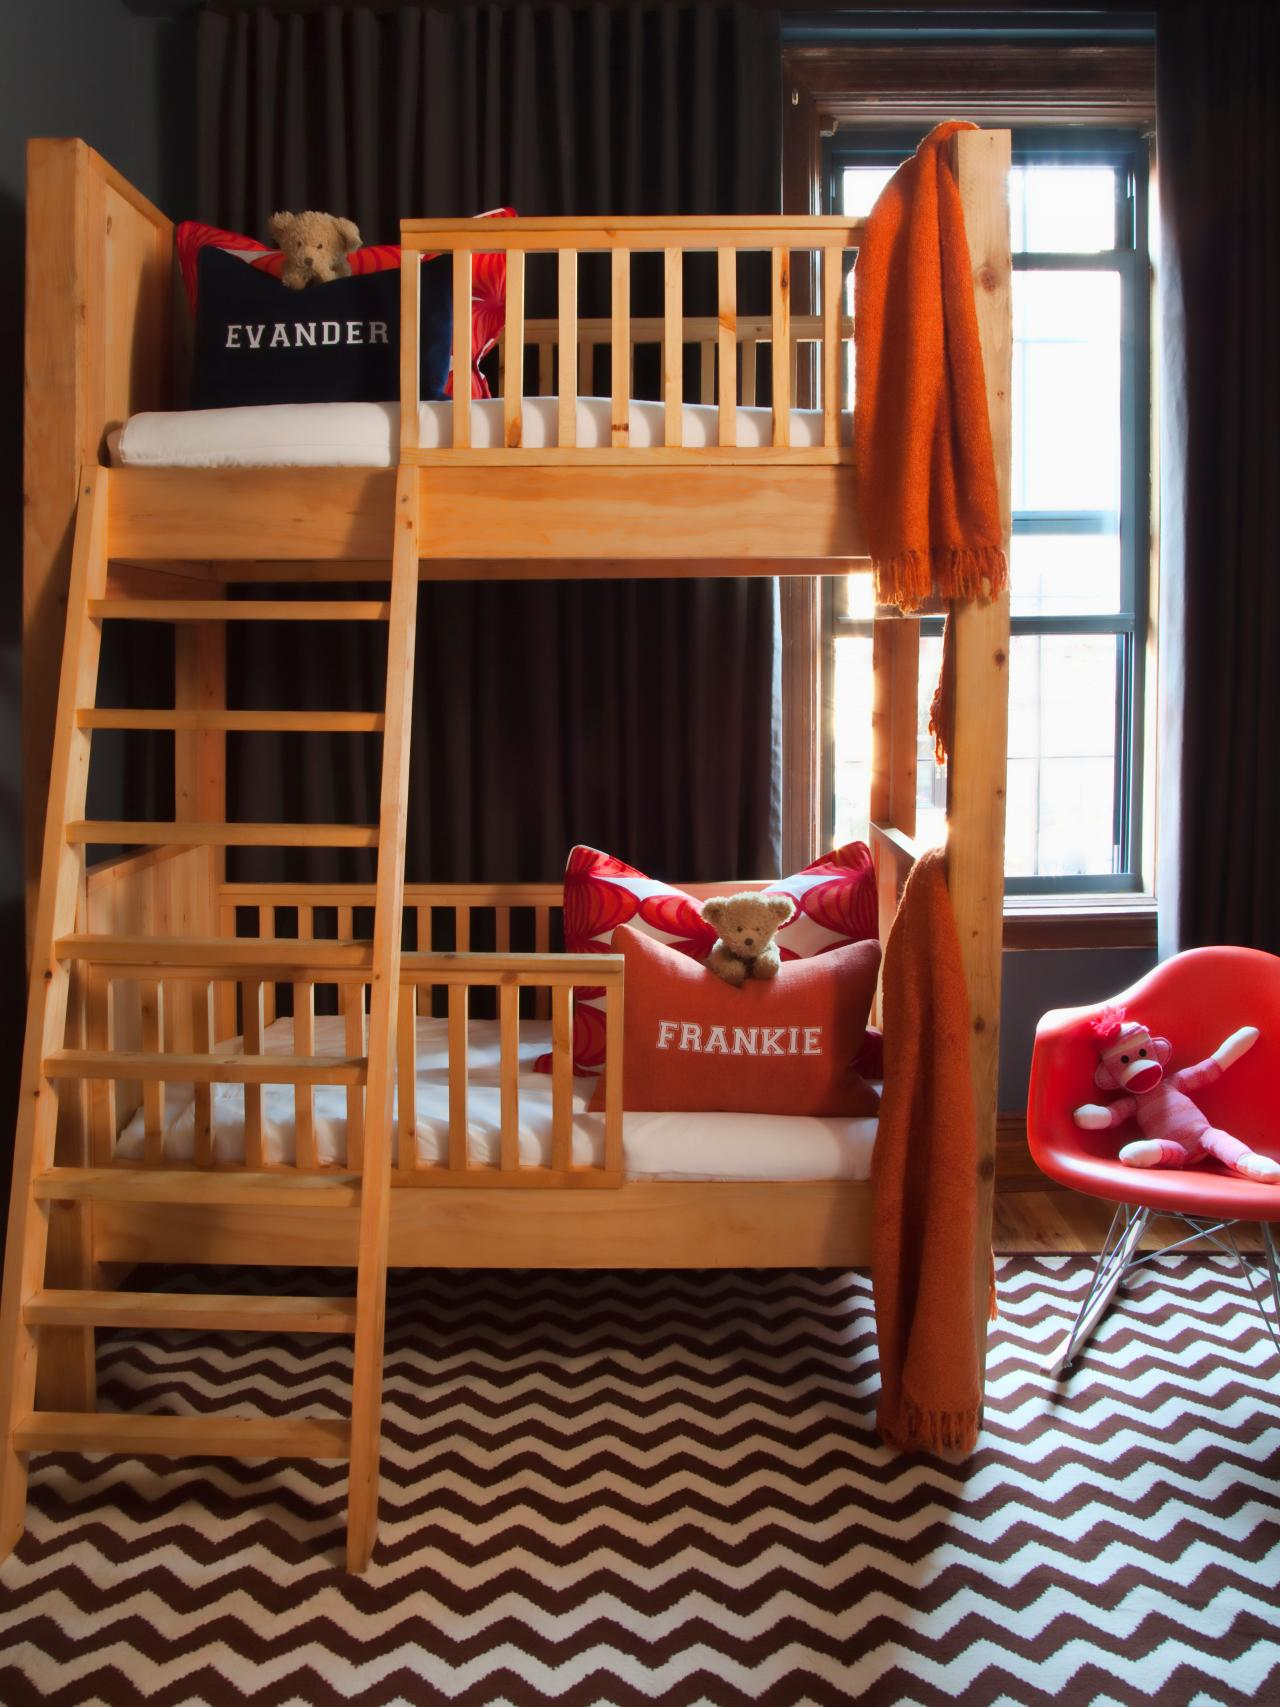 Small, Shared Kids' Room Storage And Decorating